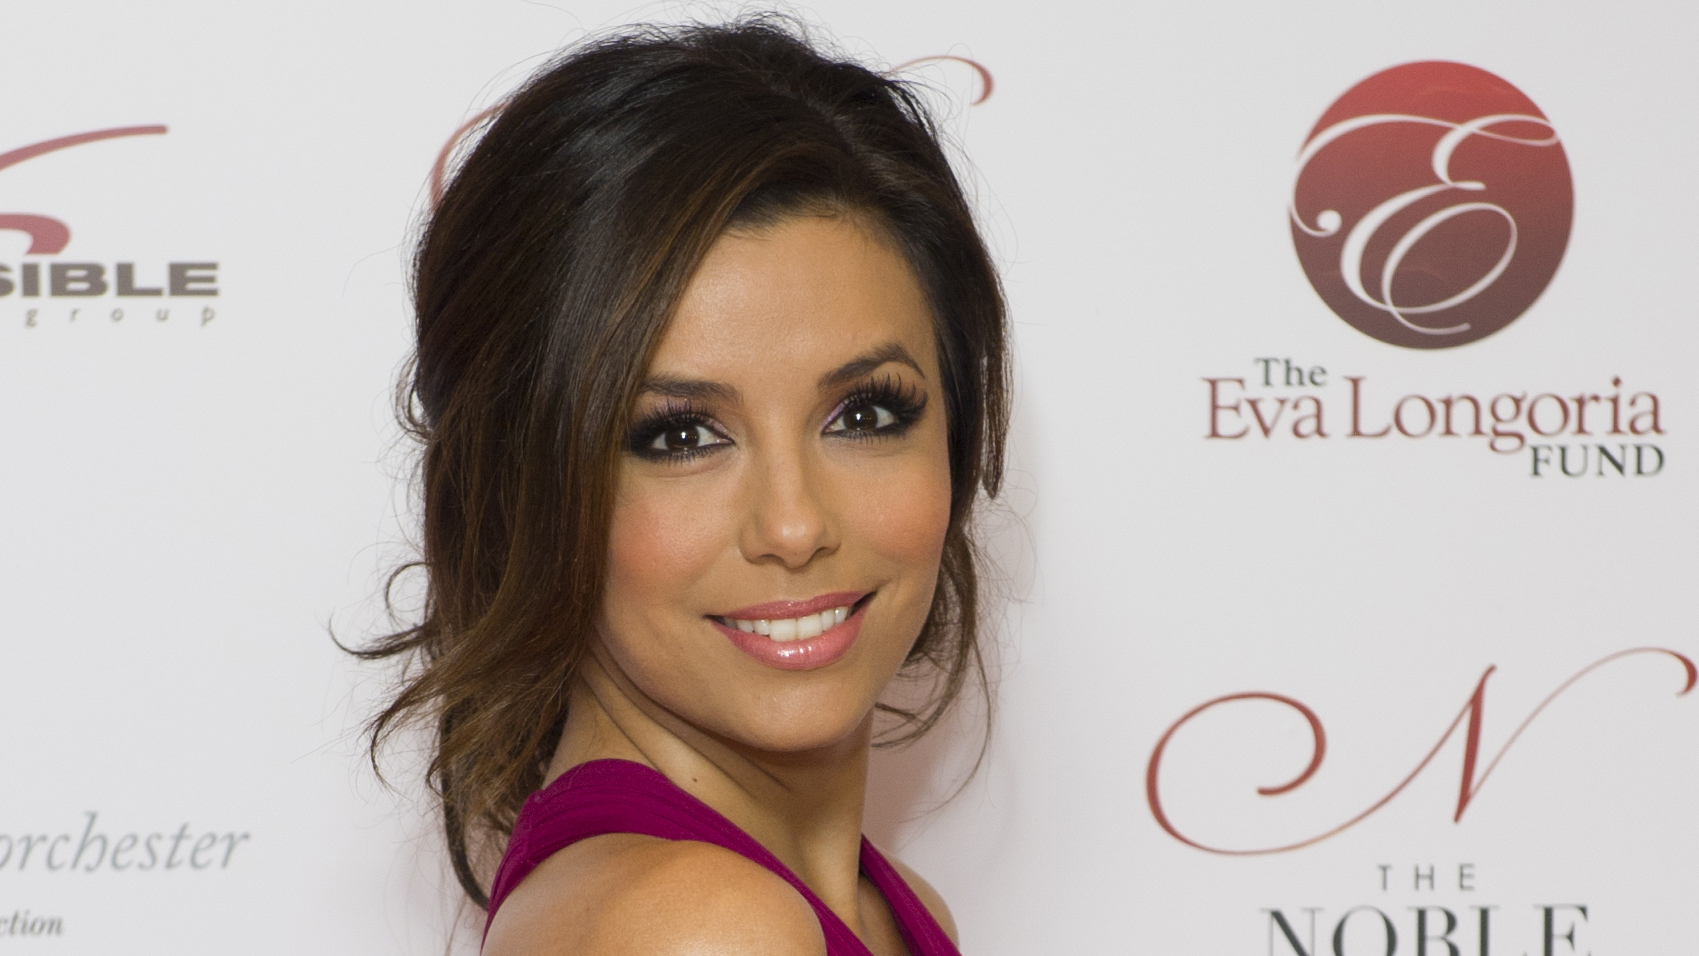 Eva Longoria to return to primetime as a 'Telenovela' diva | Fox News